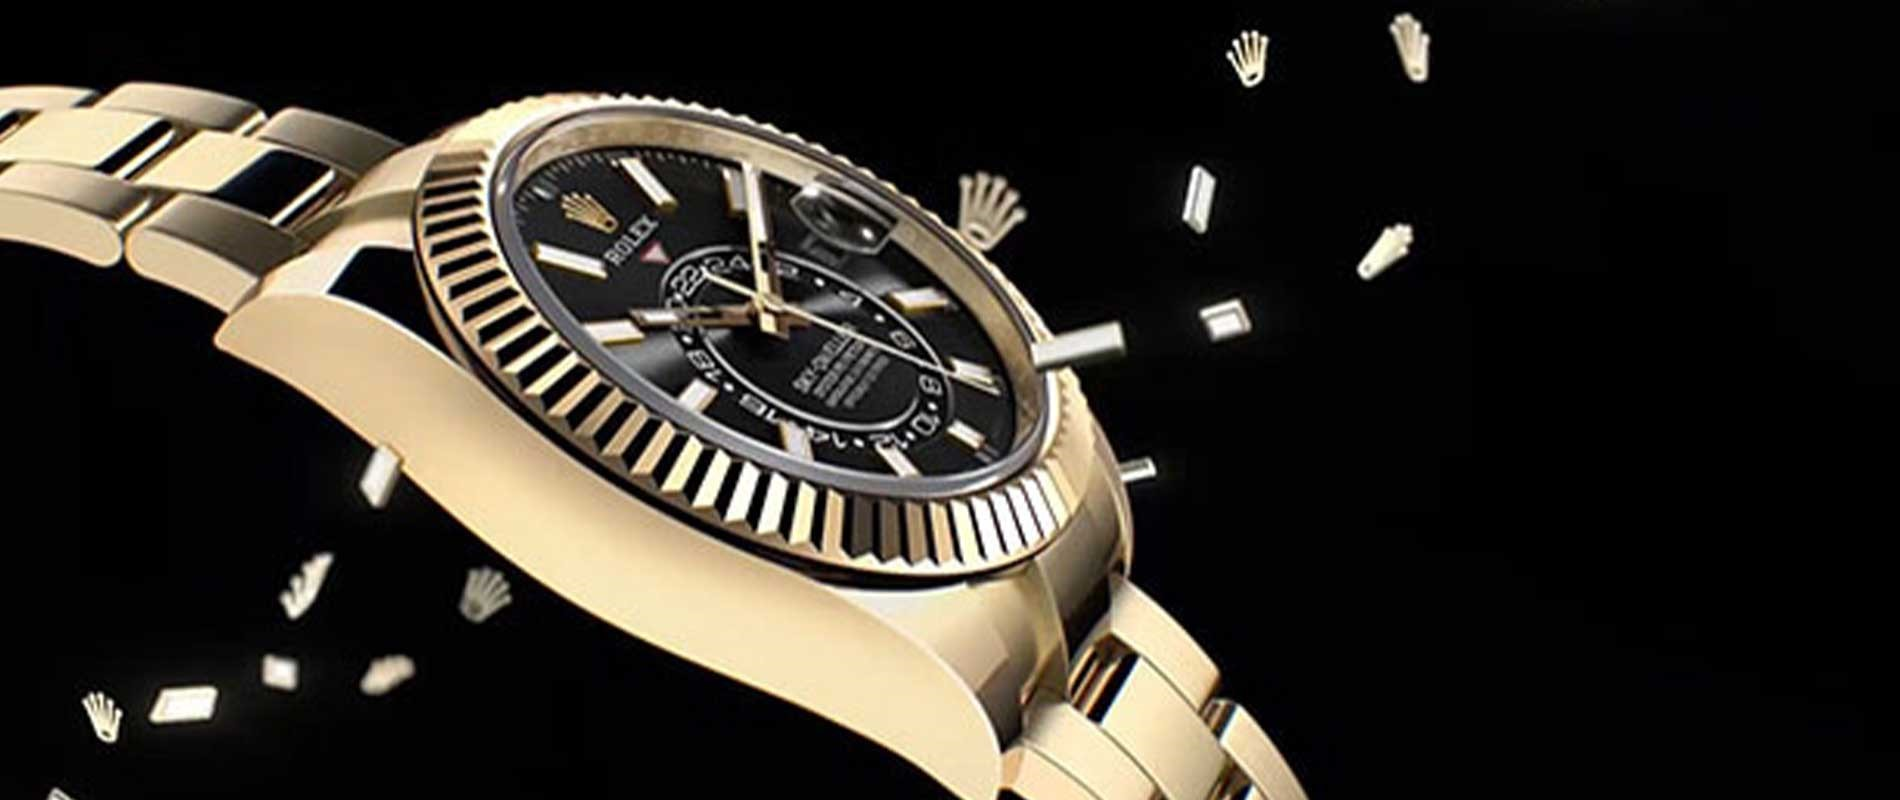 Rolex Watches in Pakistan, latest models, budget watches you must try in 2020